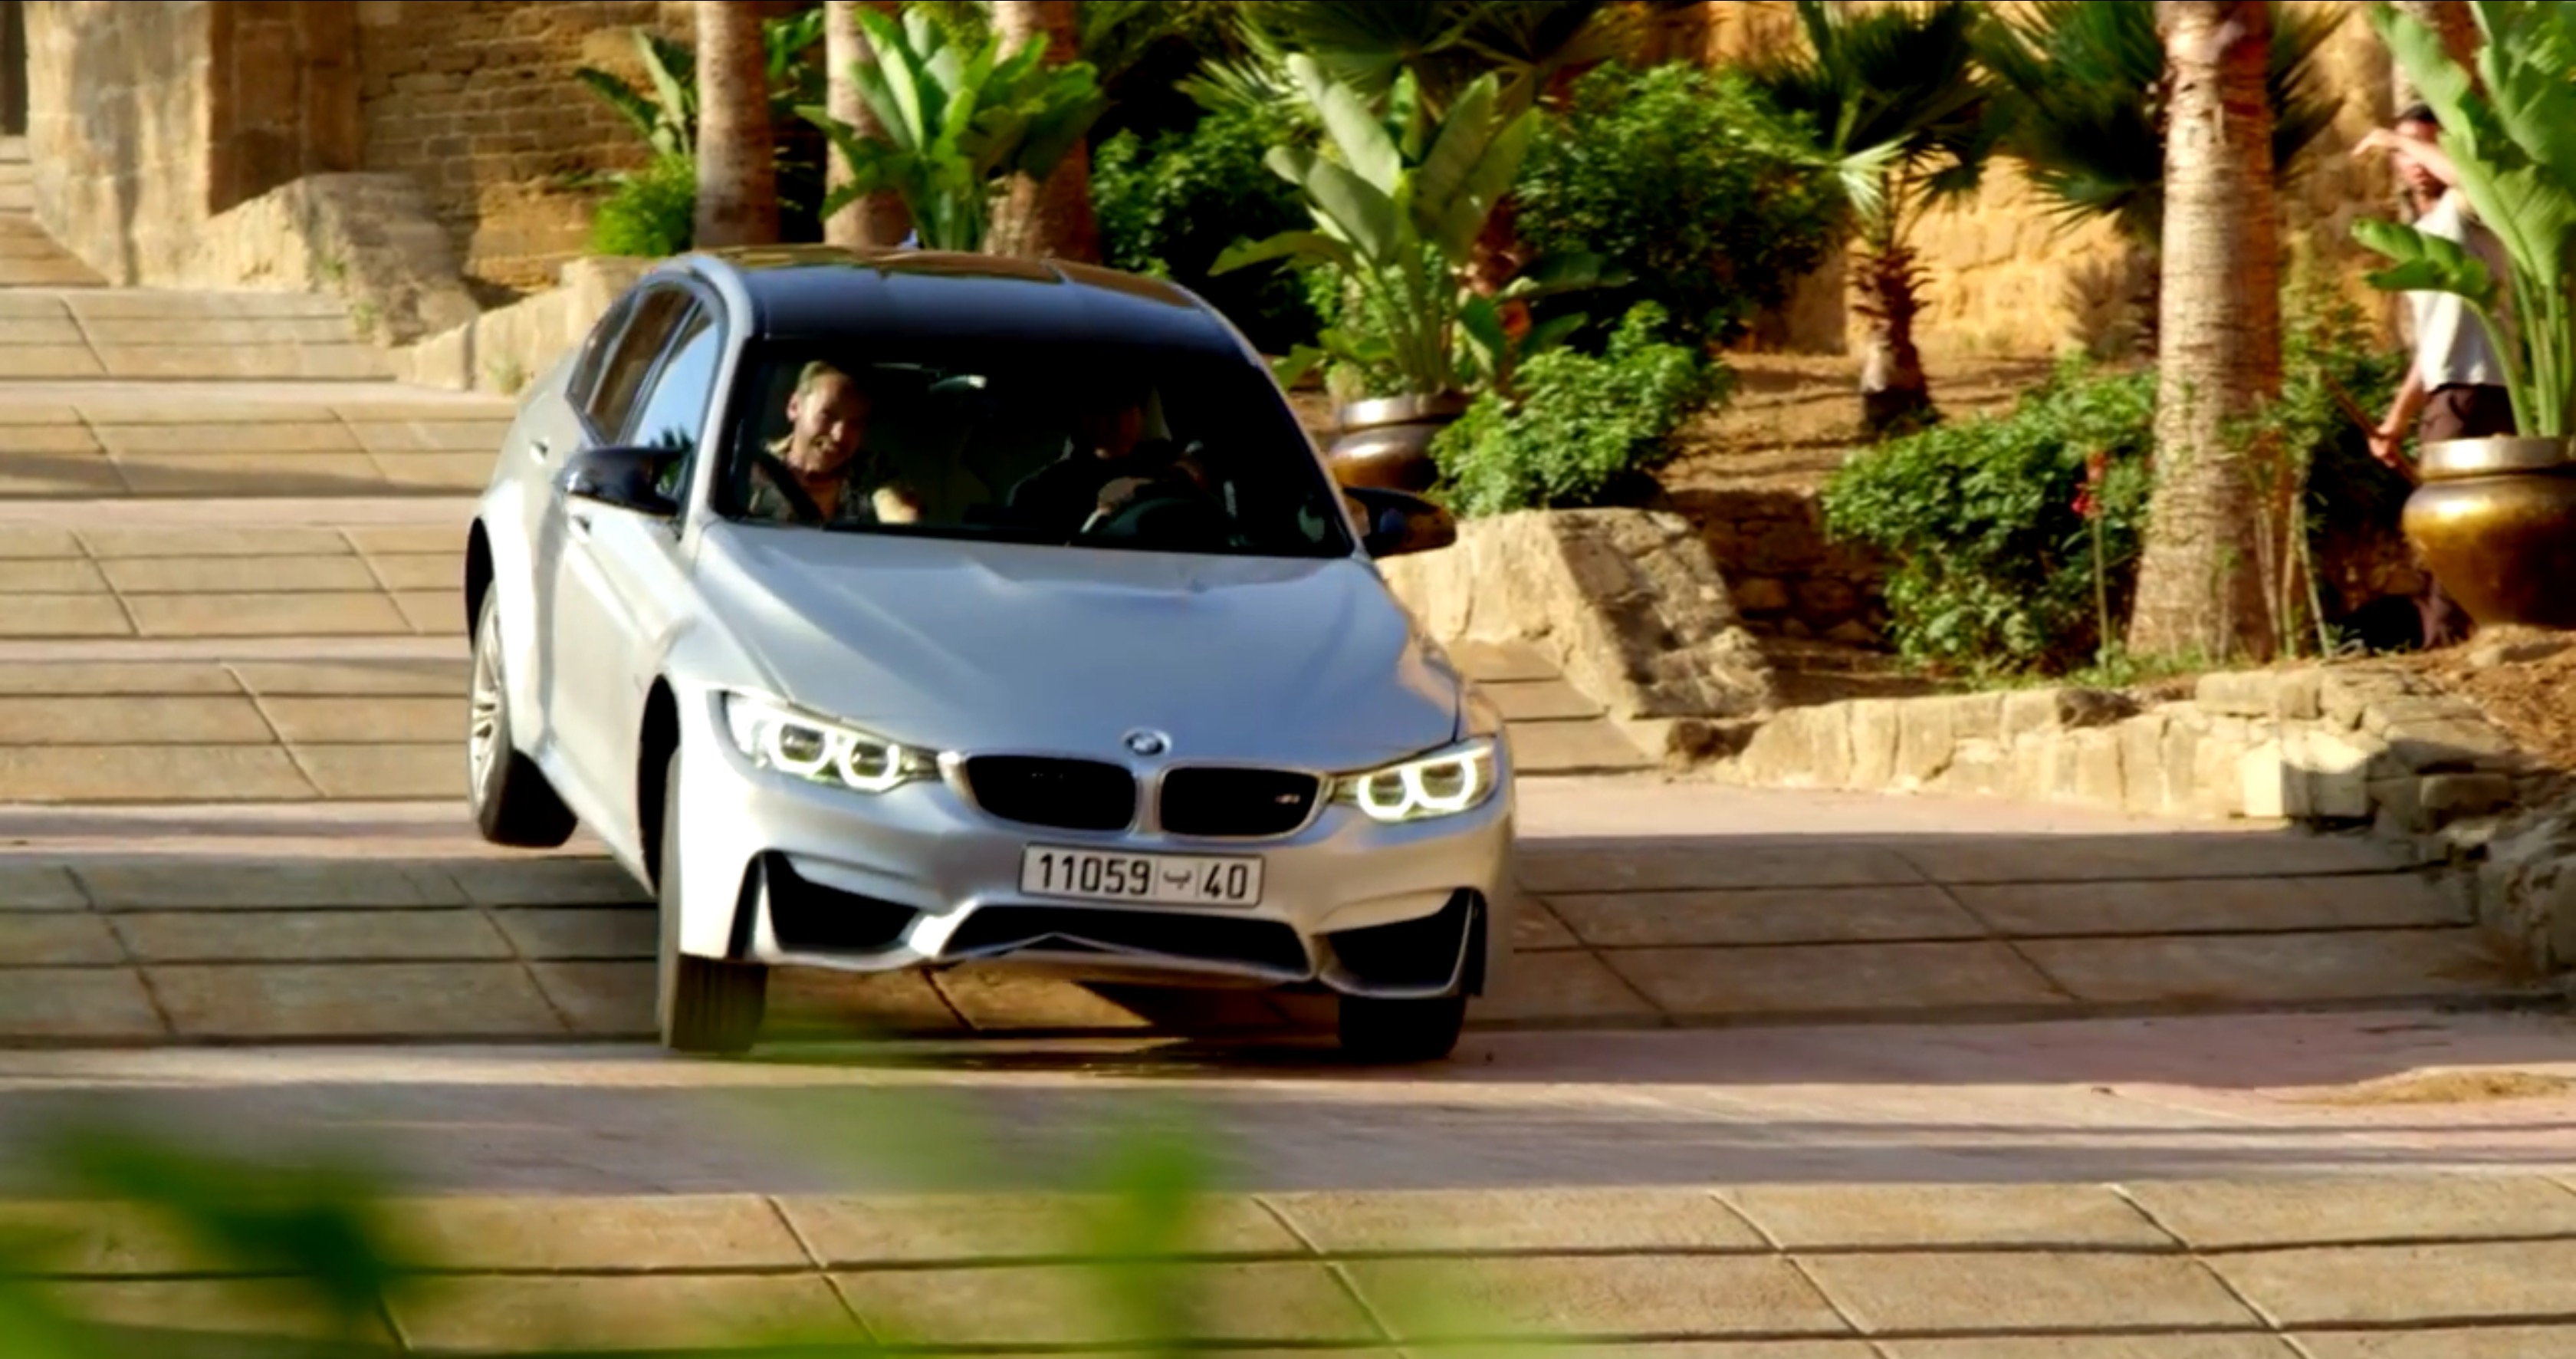 Mission Impossible 5 s Director Claims the BMW M3s Used in Stunts